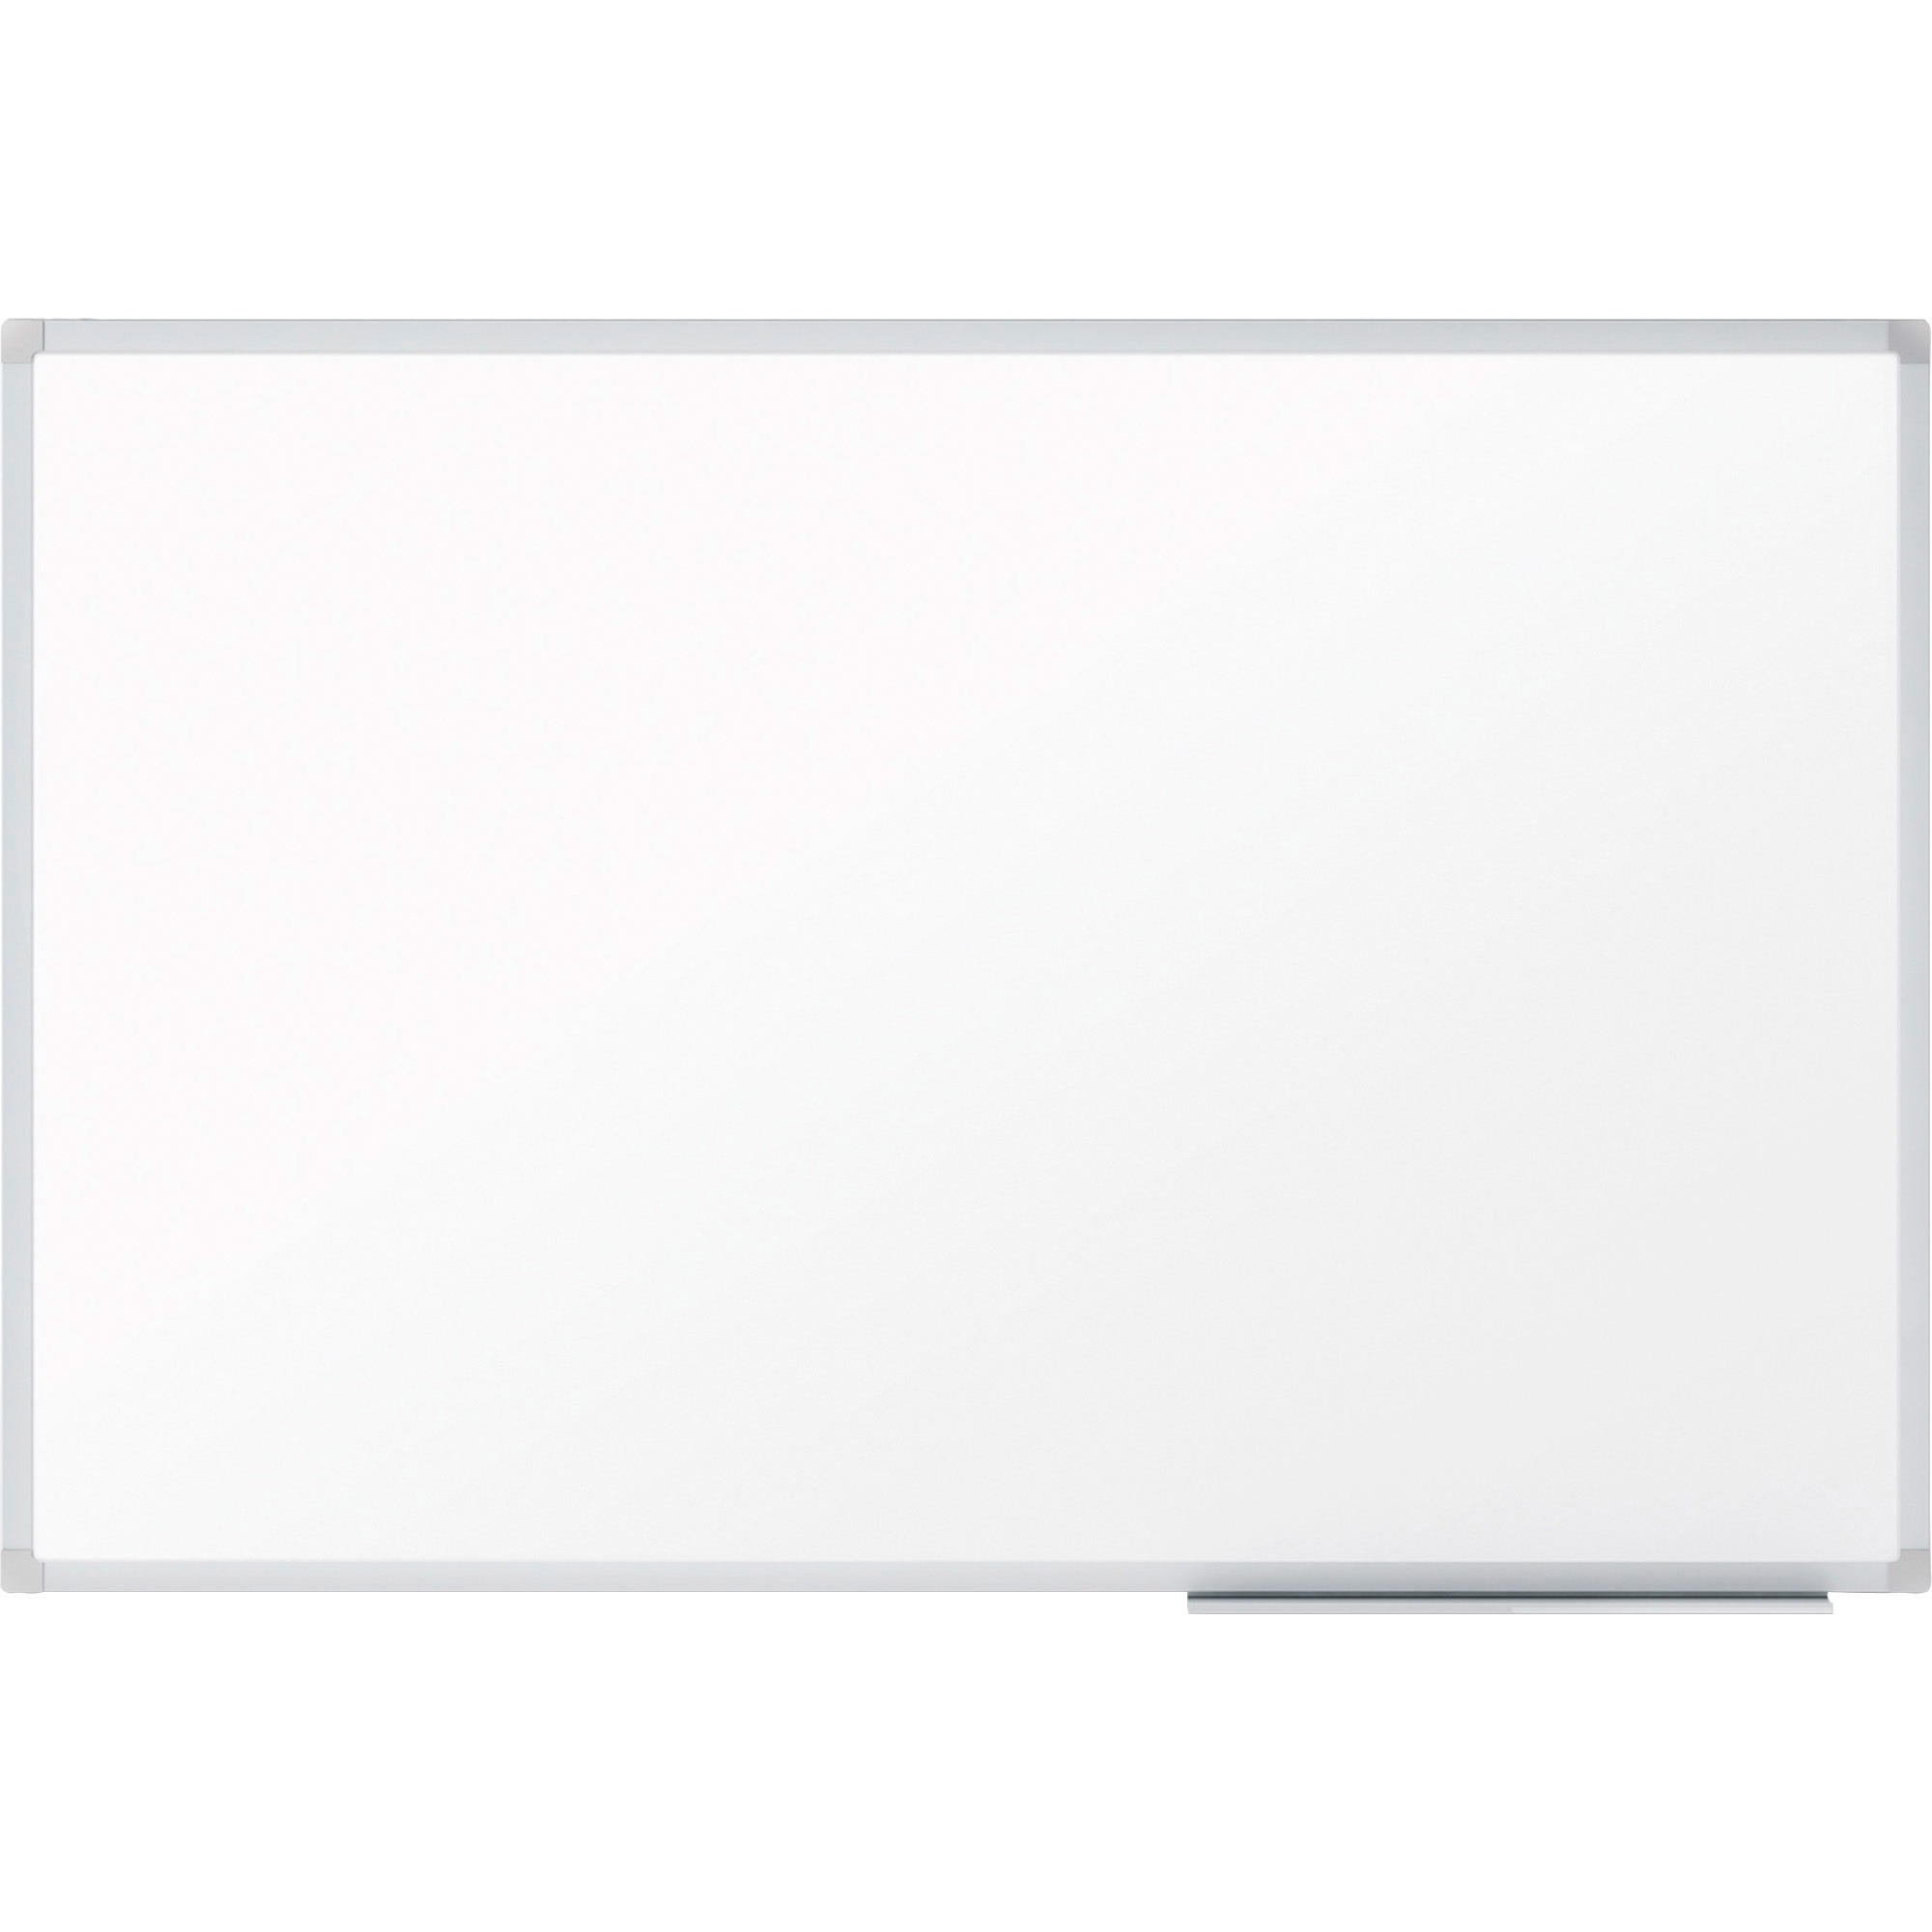 Mead Dry-erase Board with Marker Tray, 1 Each (Quantity)